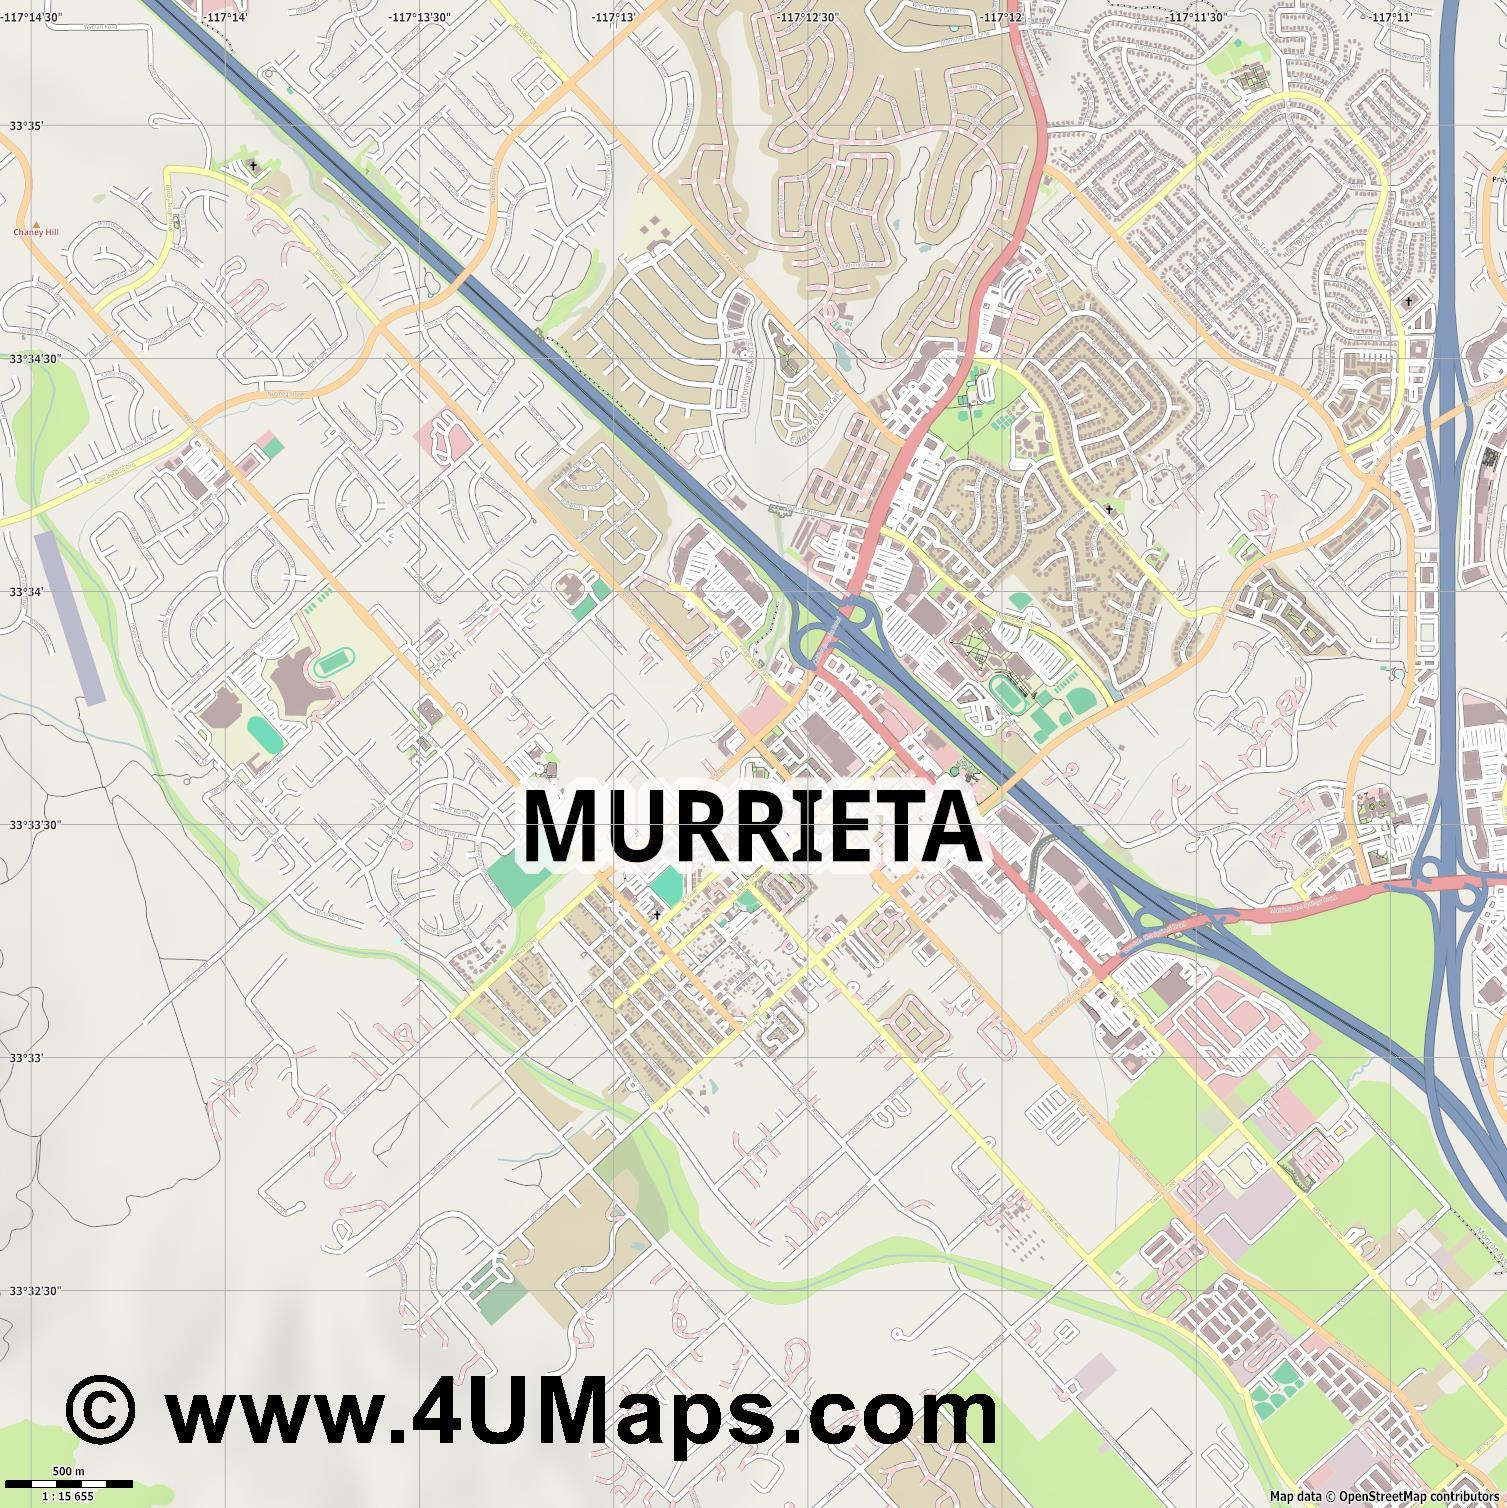 Murrieta  jpg ultra high detail preview vector city map